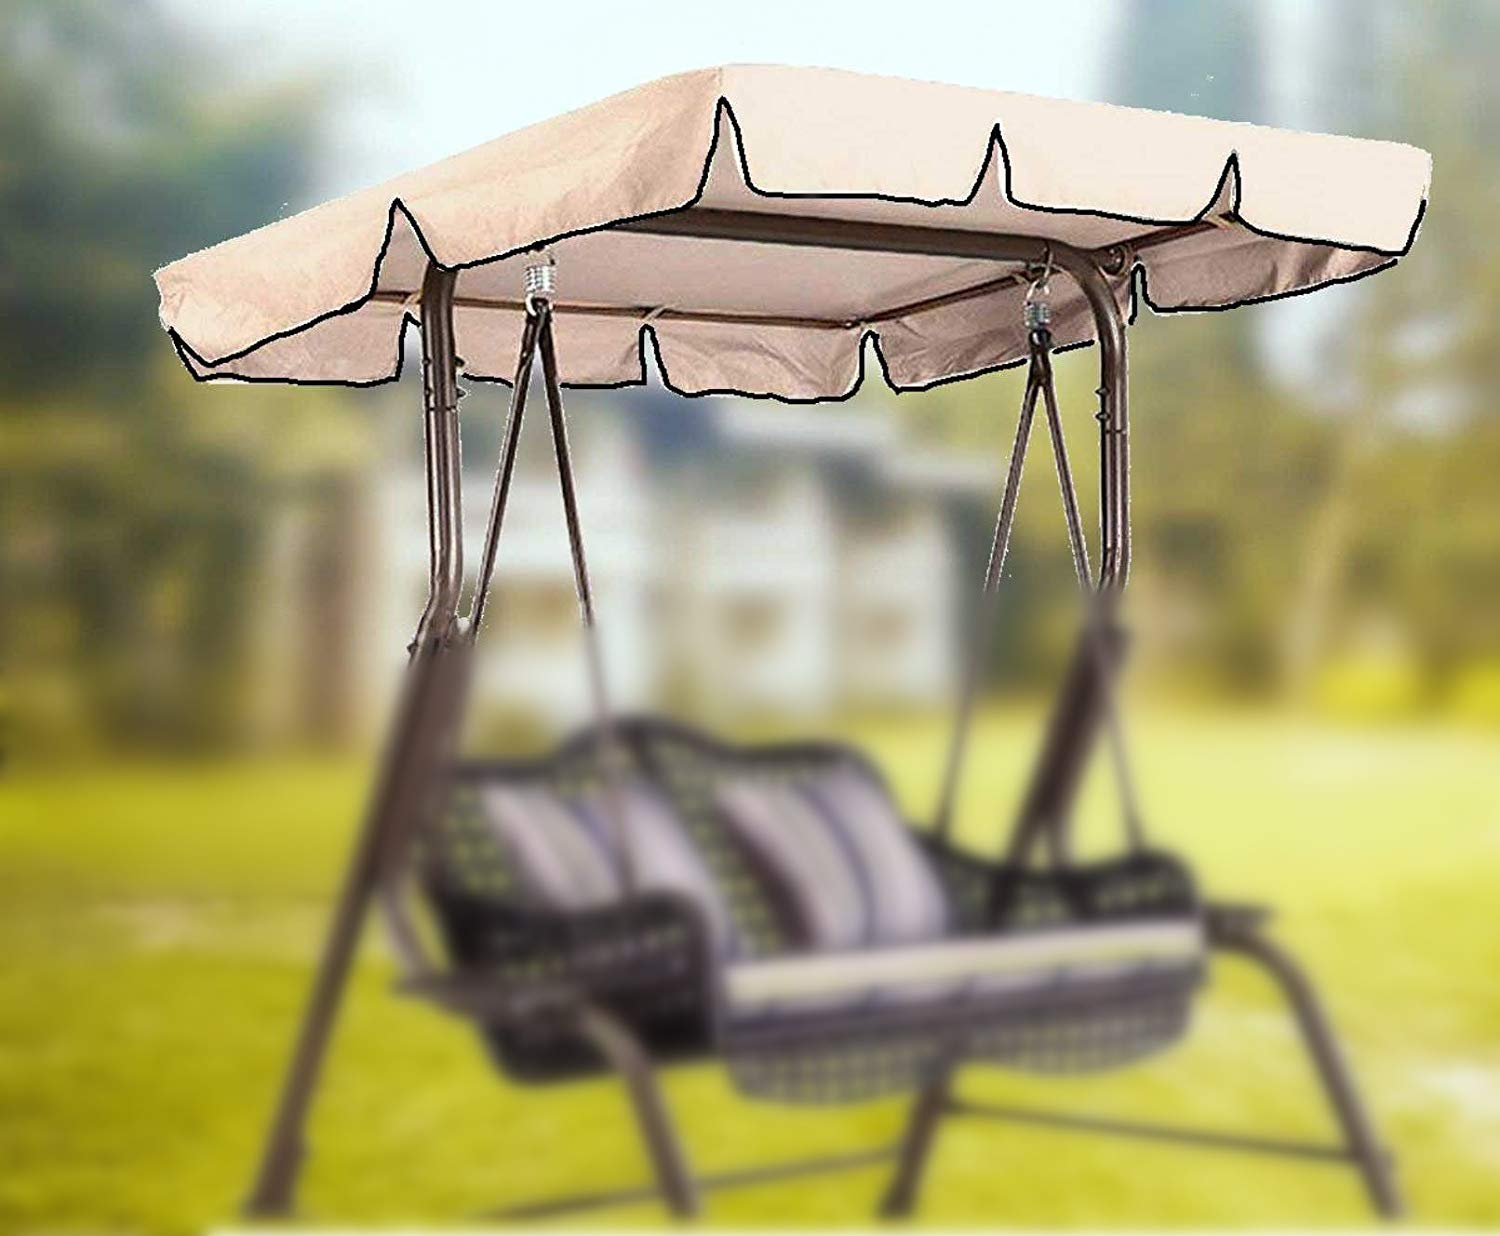 boyspringg Patio Outdoor Swing Canopy Replacement Porch Top Cover Waterproof UV Block Sun Shade Porch Swing Chair Garden Hammock Patio Furniture Cover (Beige 76x49x5.9 inch) by boyspringg